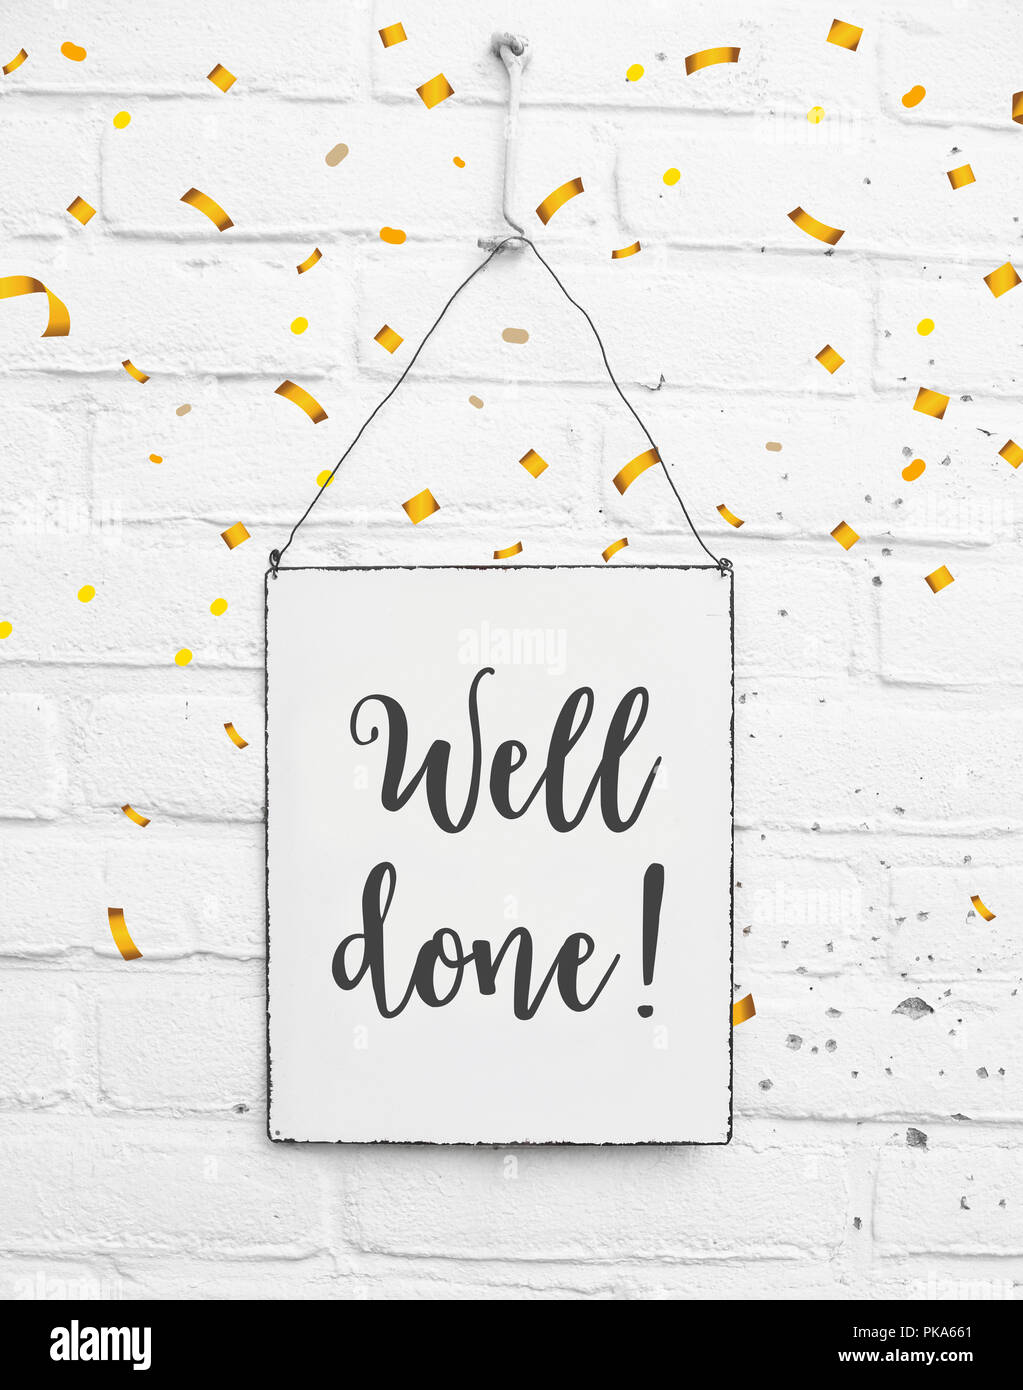 Text well done congratulations on white metal plate with confetti - Stock Image